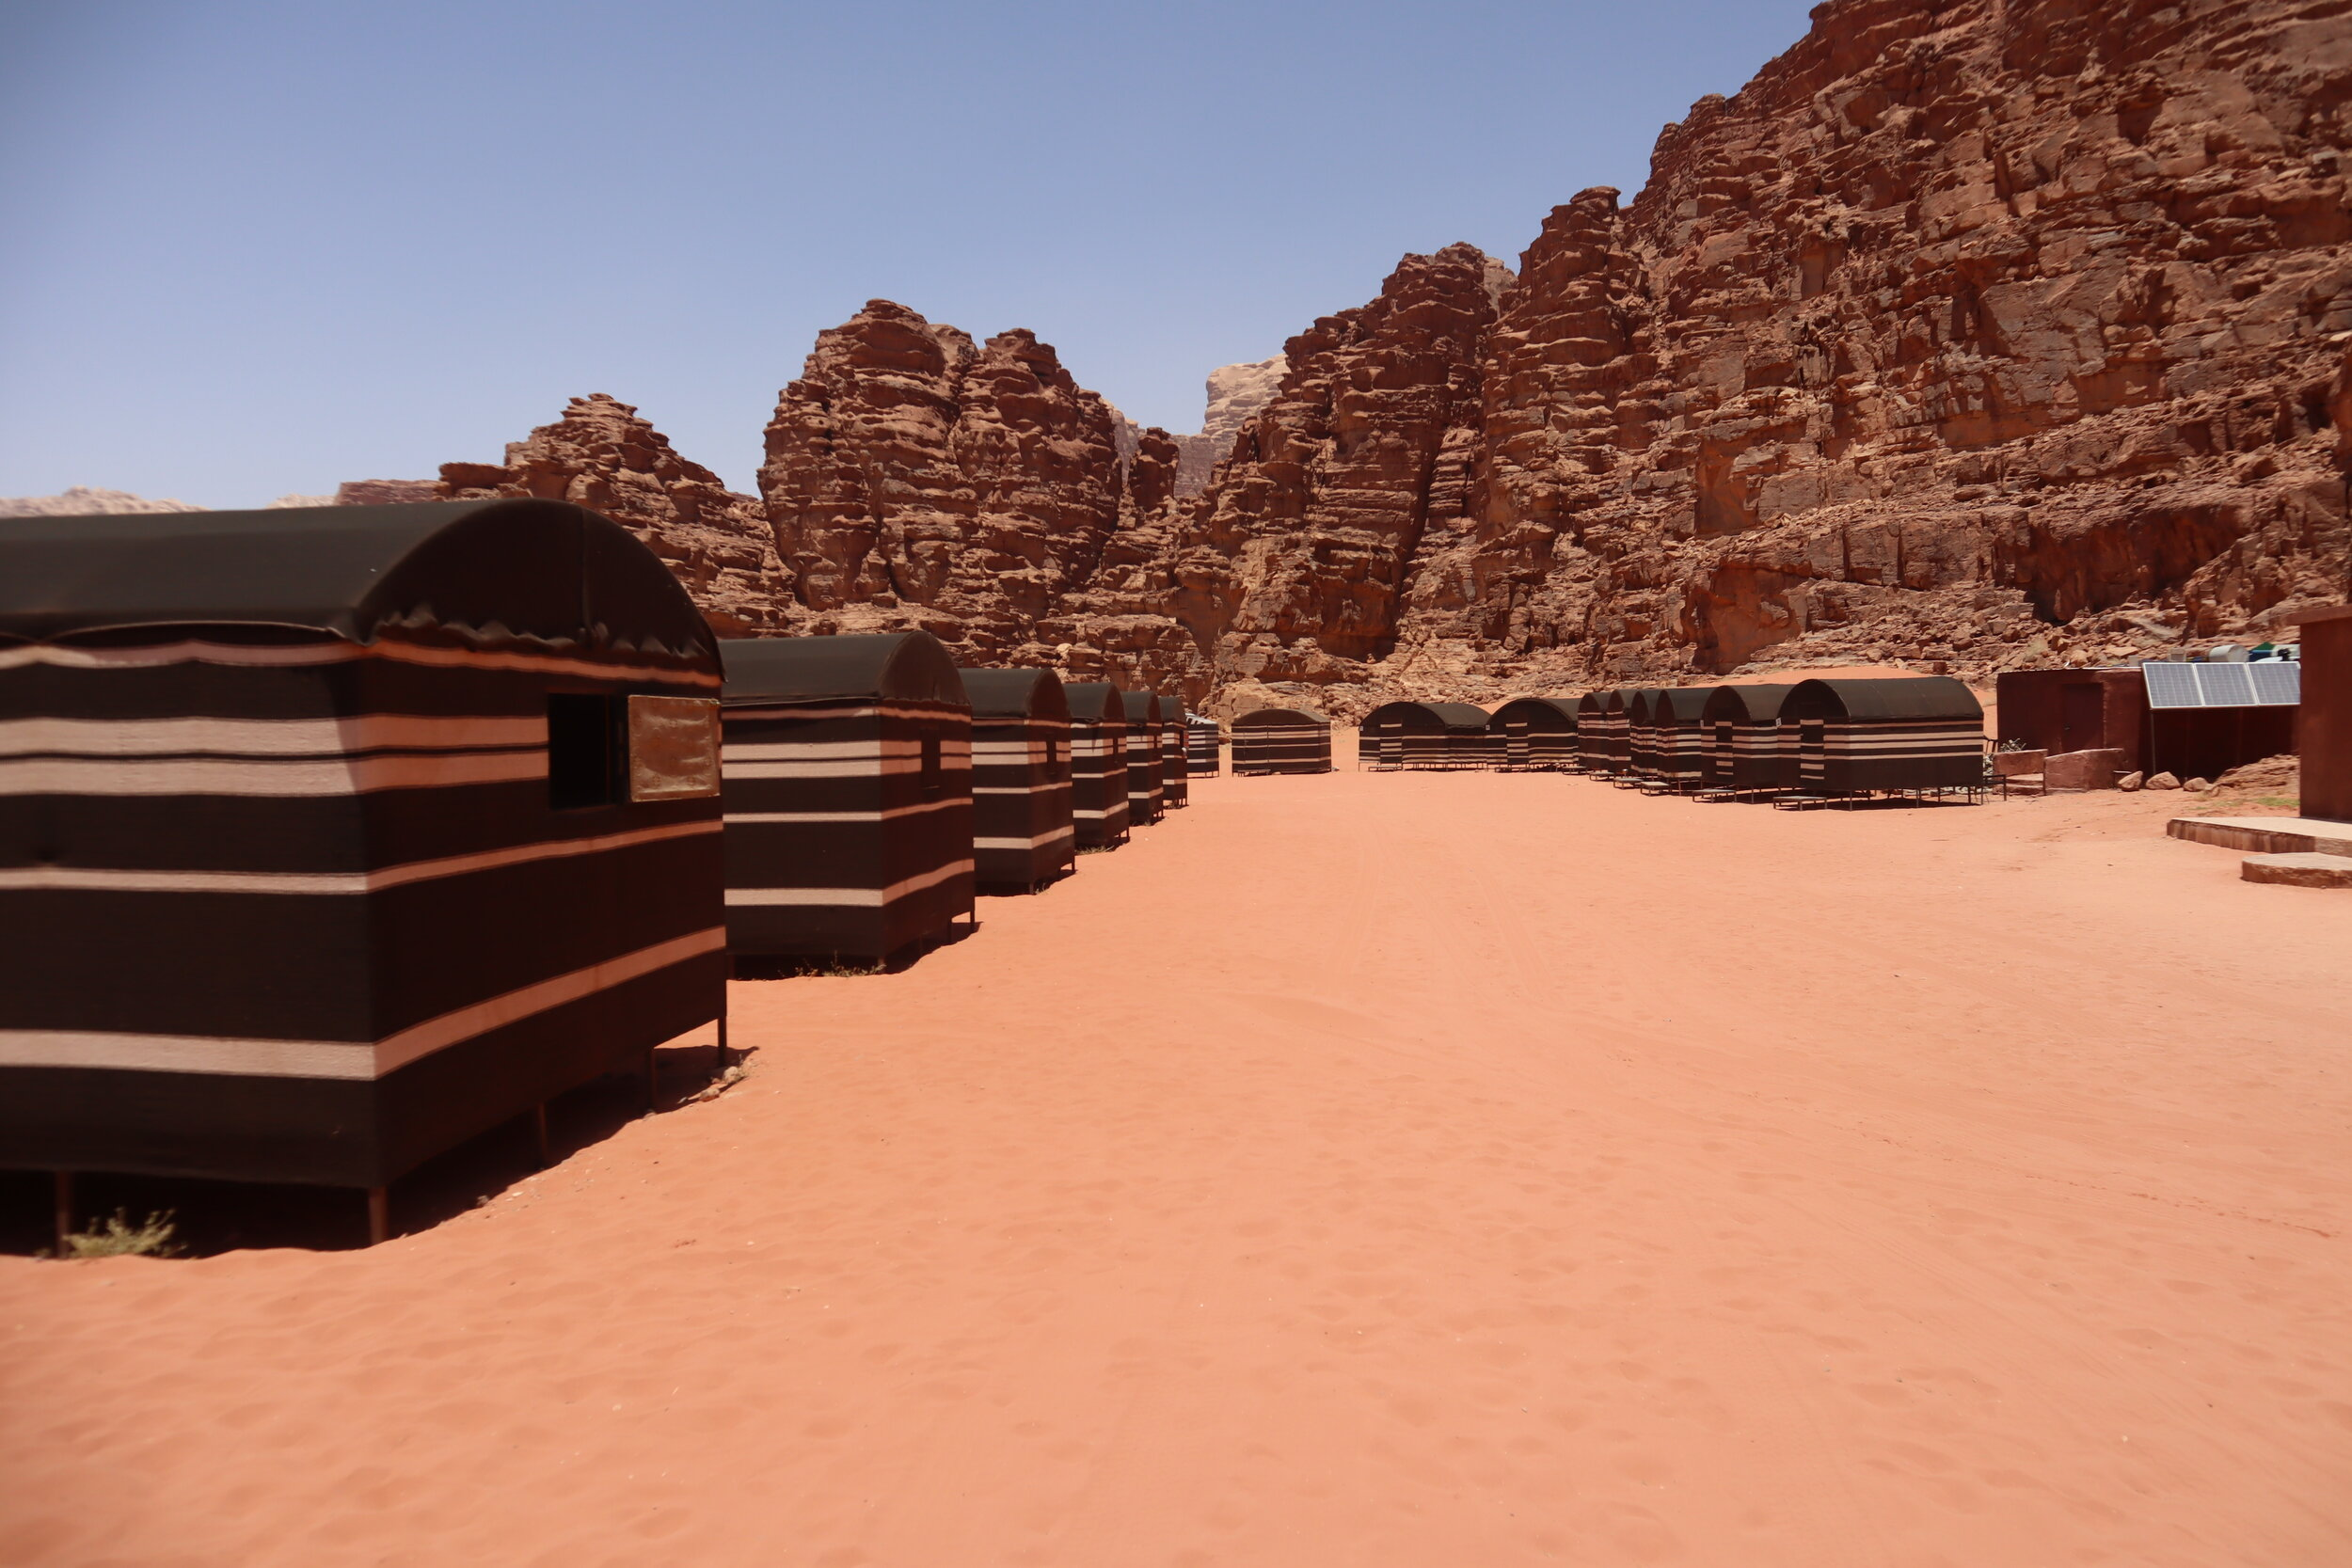 Wadi Rum Bedouin Camp – Camp grounds